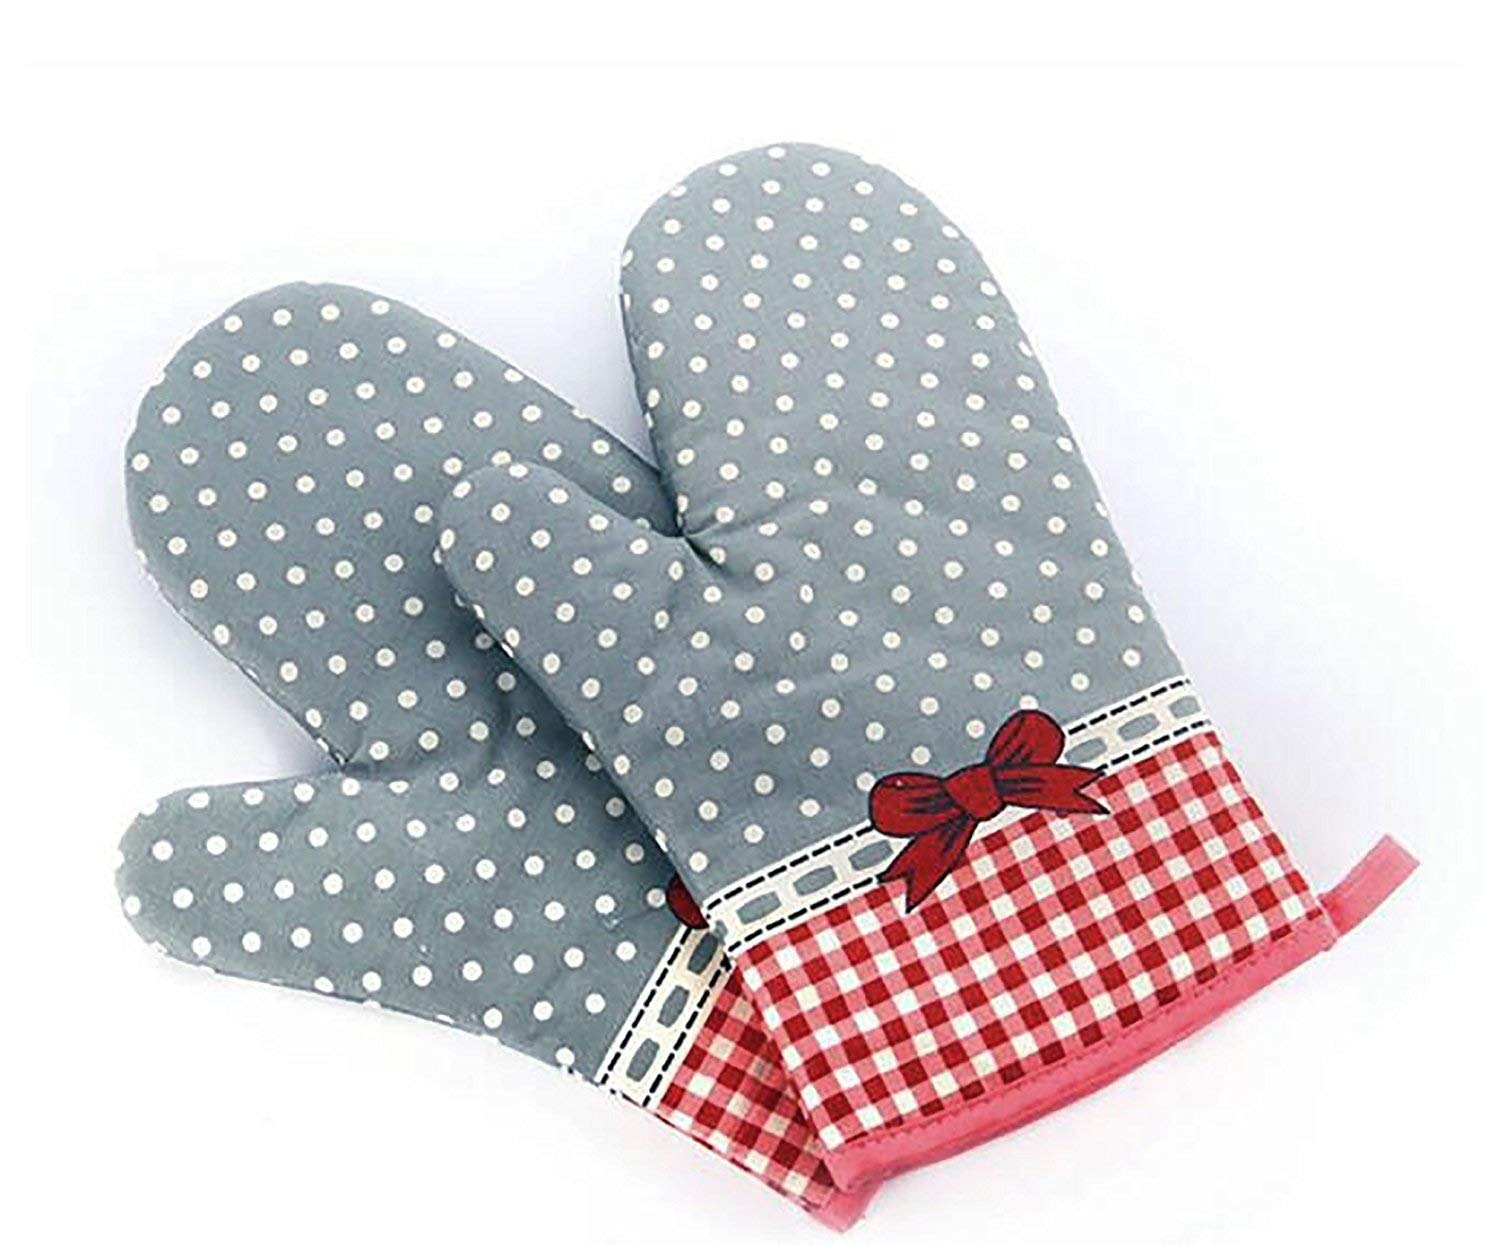 Set of Two Oven Mitts | Heat Resistant Cotton Kitchen Pot Holder Gloves for Cooking,Barbecue,Baking,Grilling (Dotted With Ribbon Christmas Red)